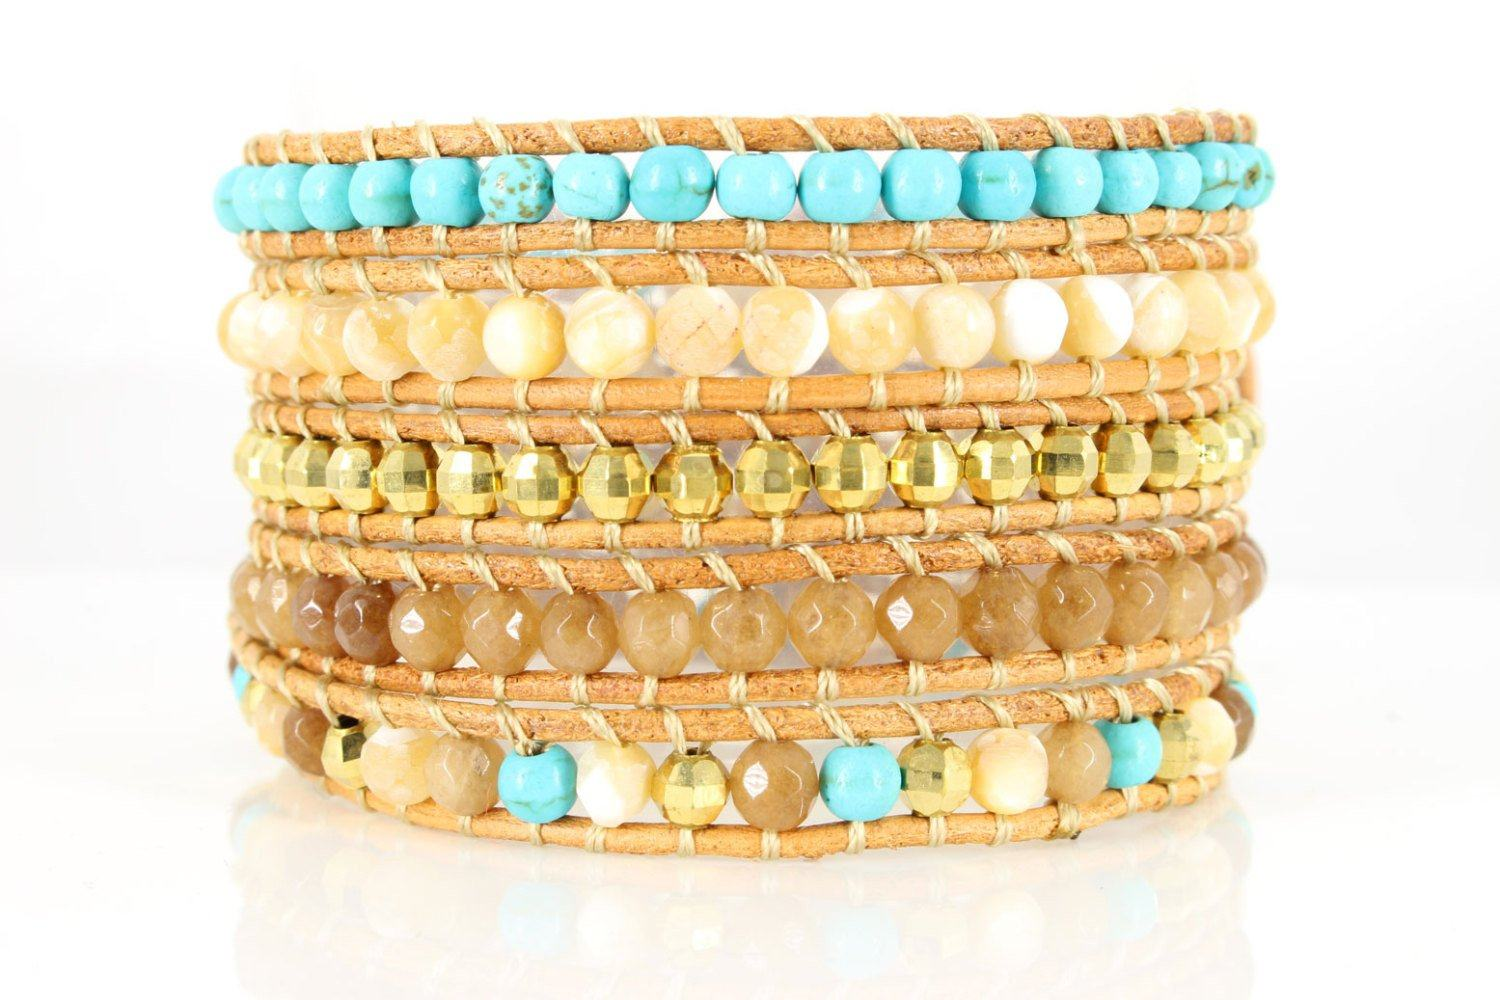 Boho Wrap Bracelet - Leather Bracelet - Beaded Bracelet - 5x Five Wrap Gold Beads Bracelet. Semi-precious stones - product_type] - Beautiz